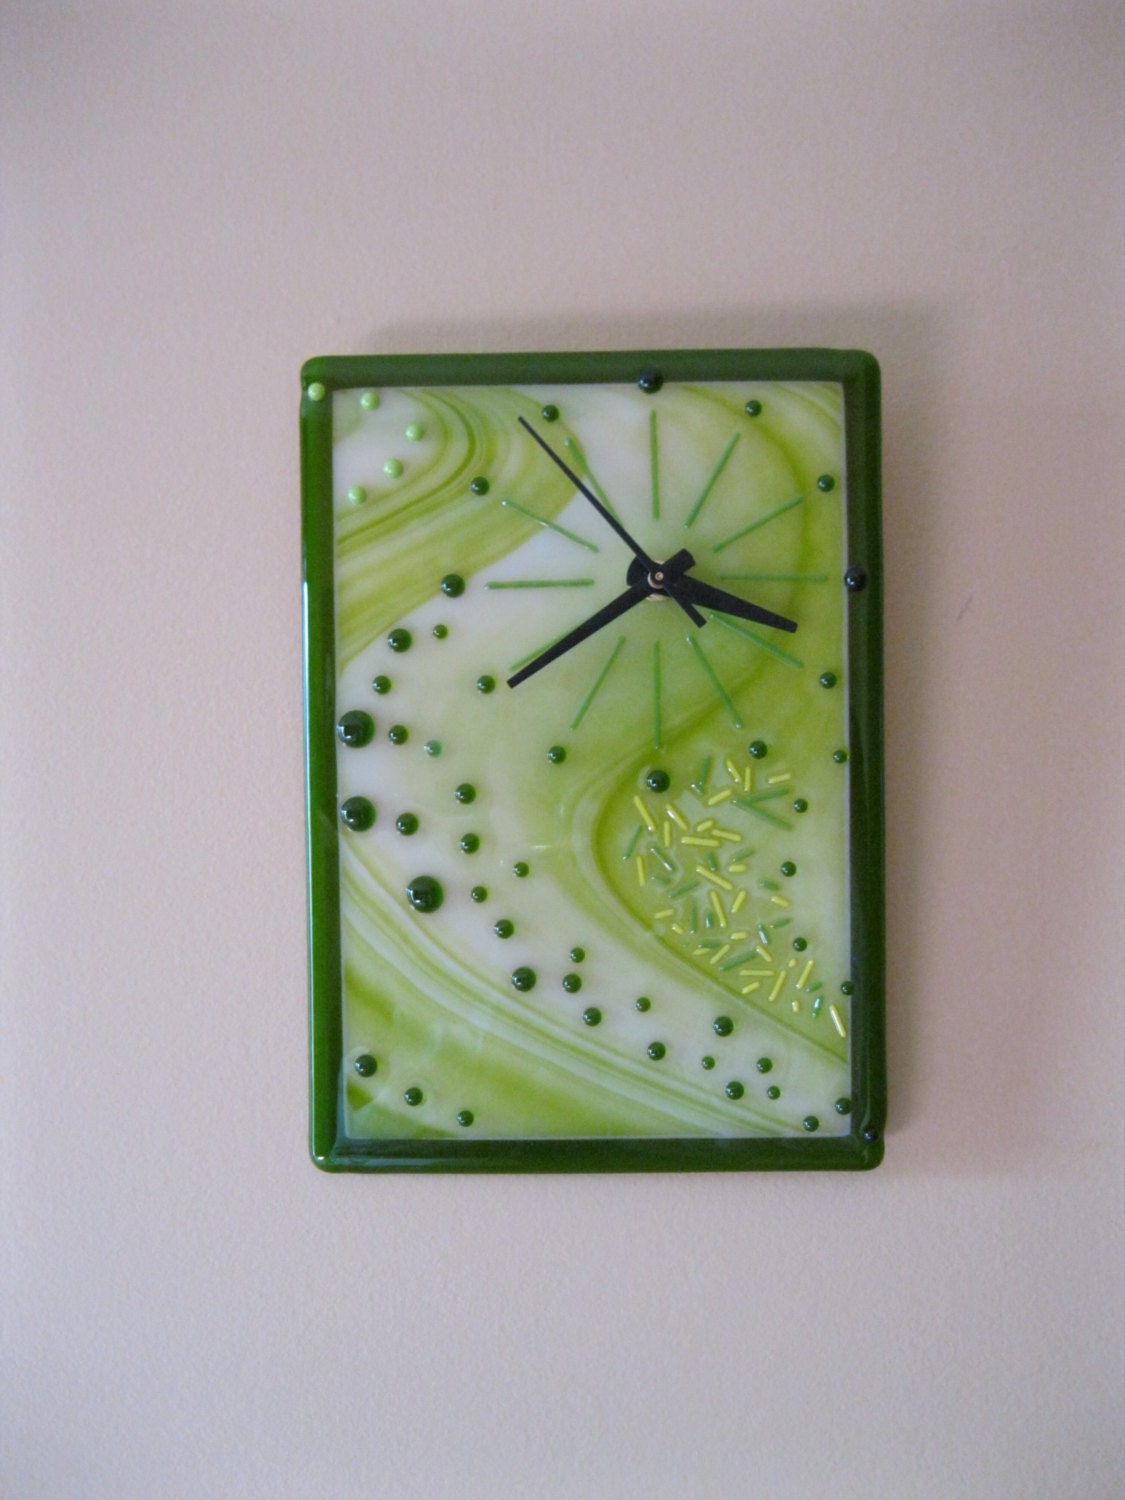 9 75 X 7 5 Fused Glass Clock Quartz Movement